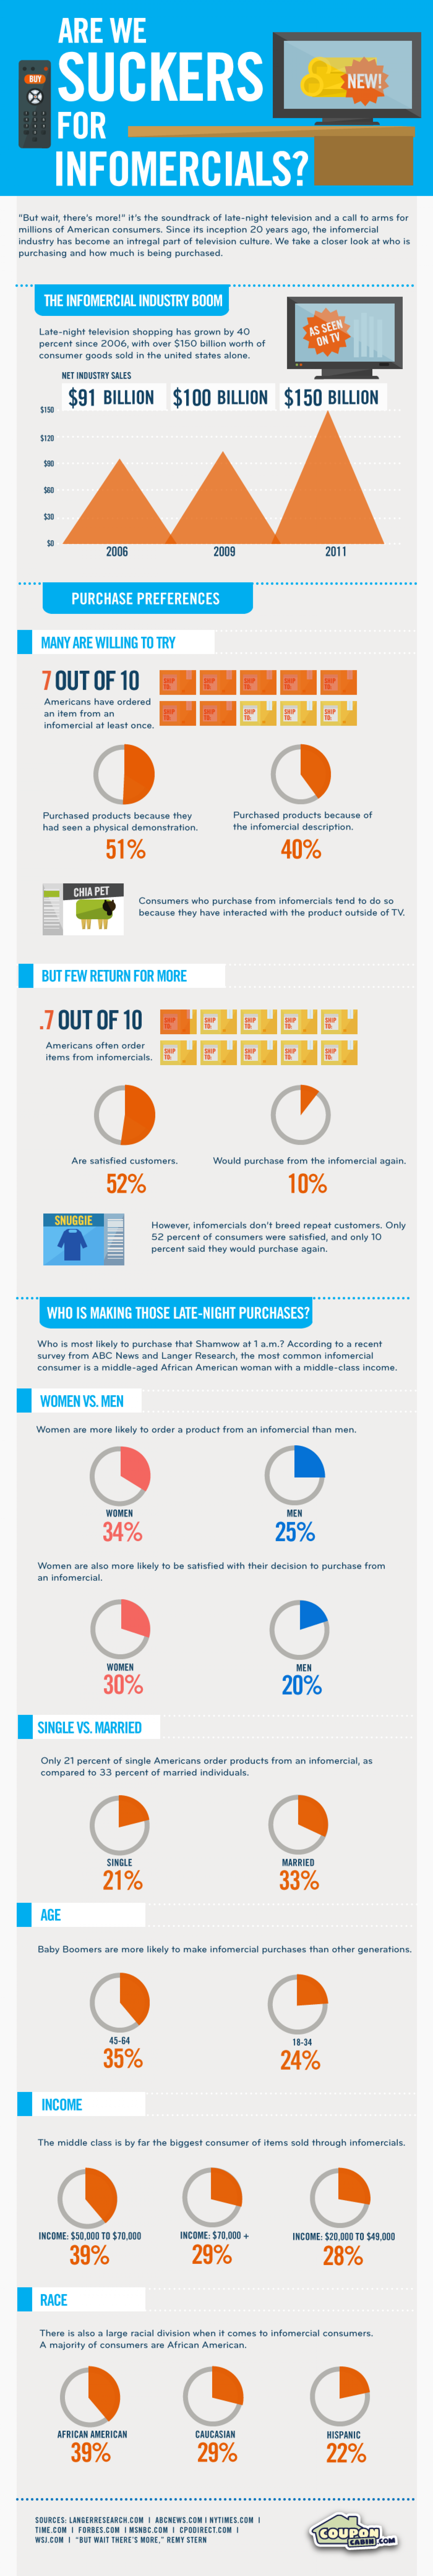 Are We Suckers for Infomercials? Infographic